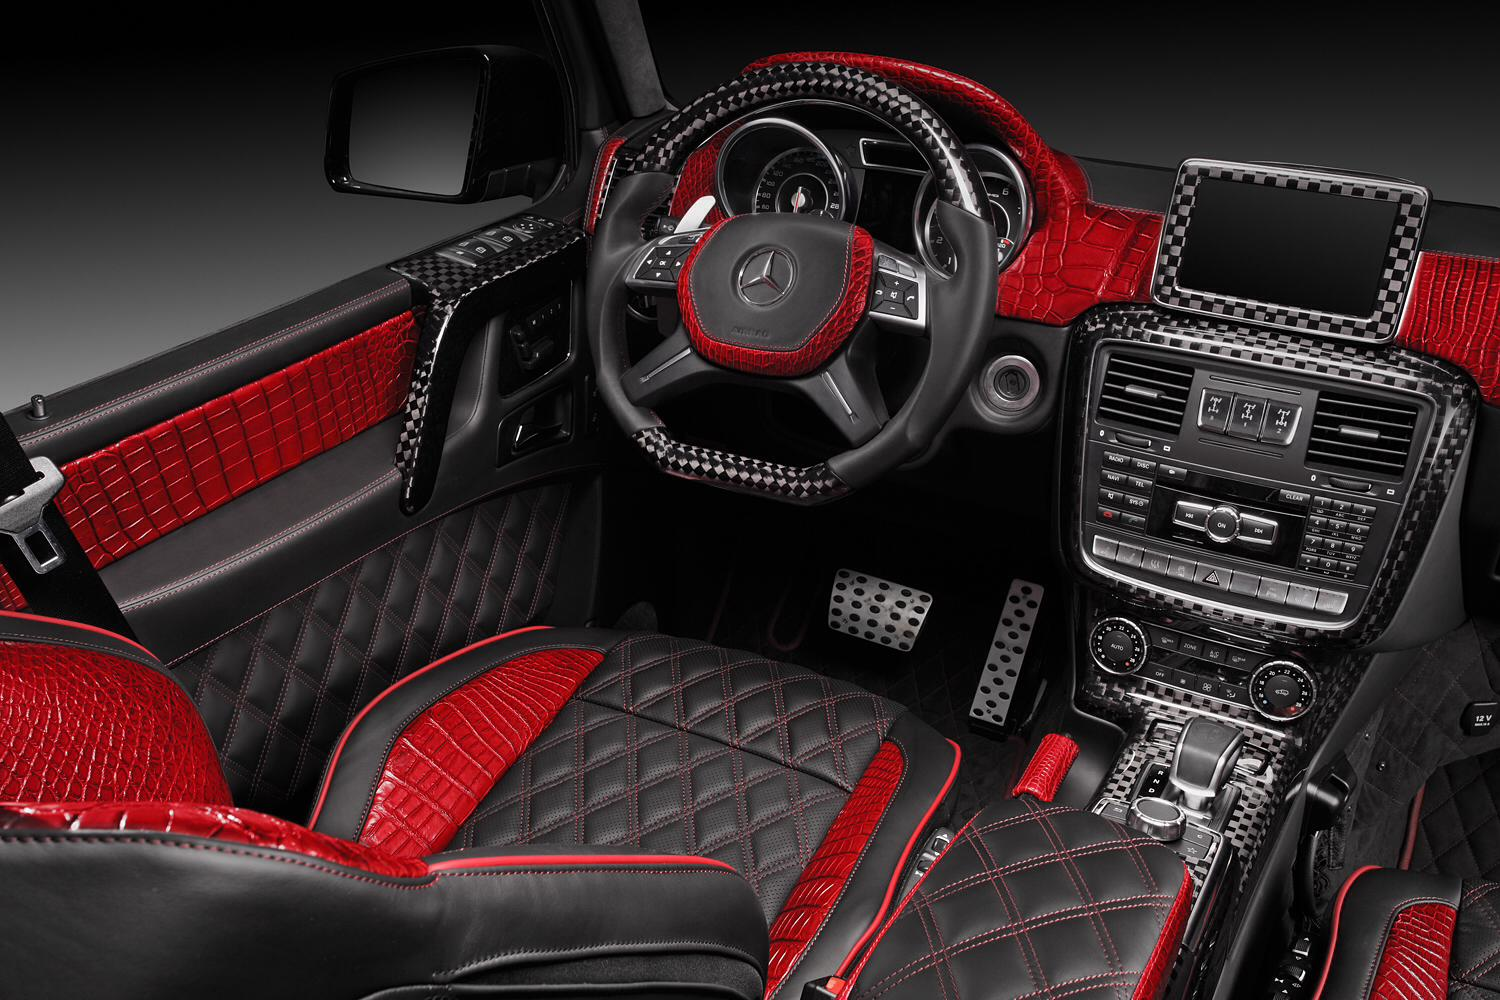 Red Crocodile Leather and Carbon Fiber Combine in G65 AMG ...